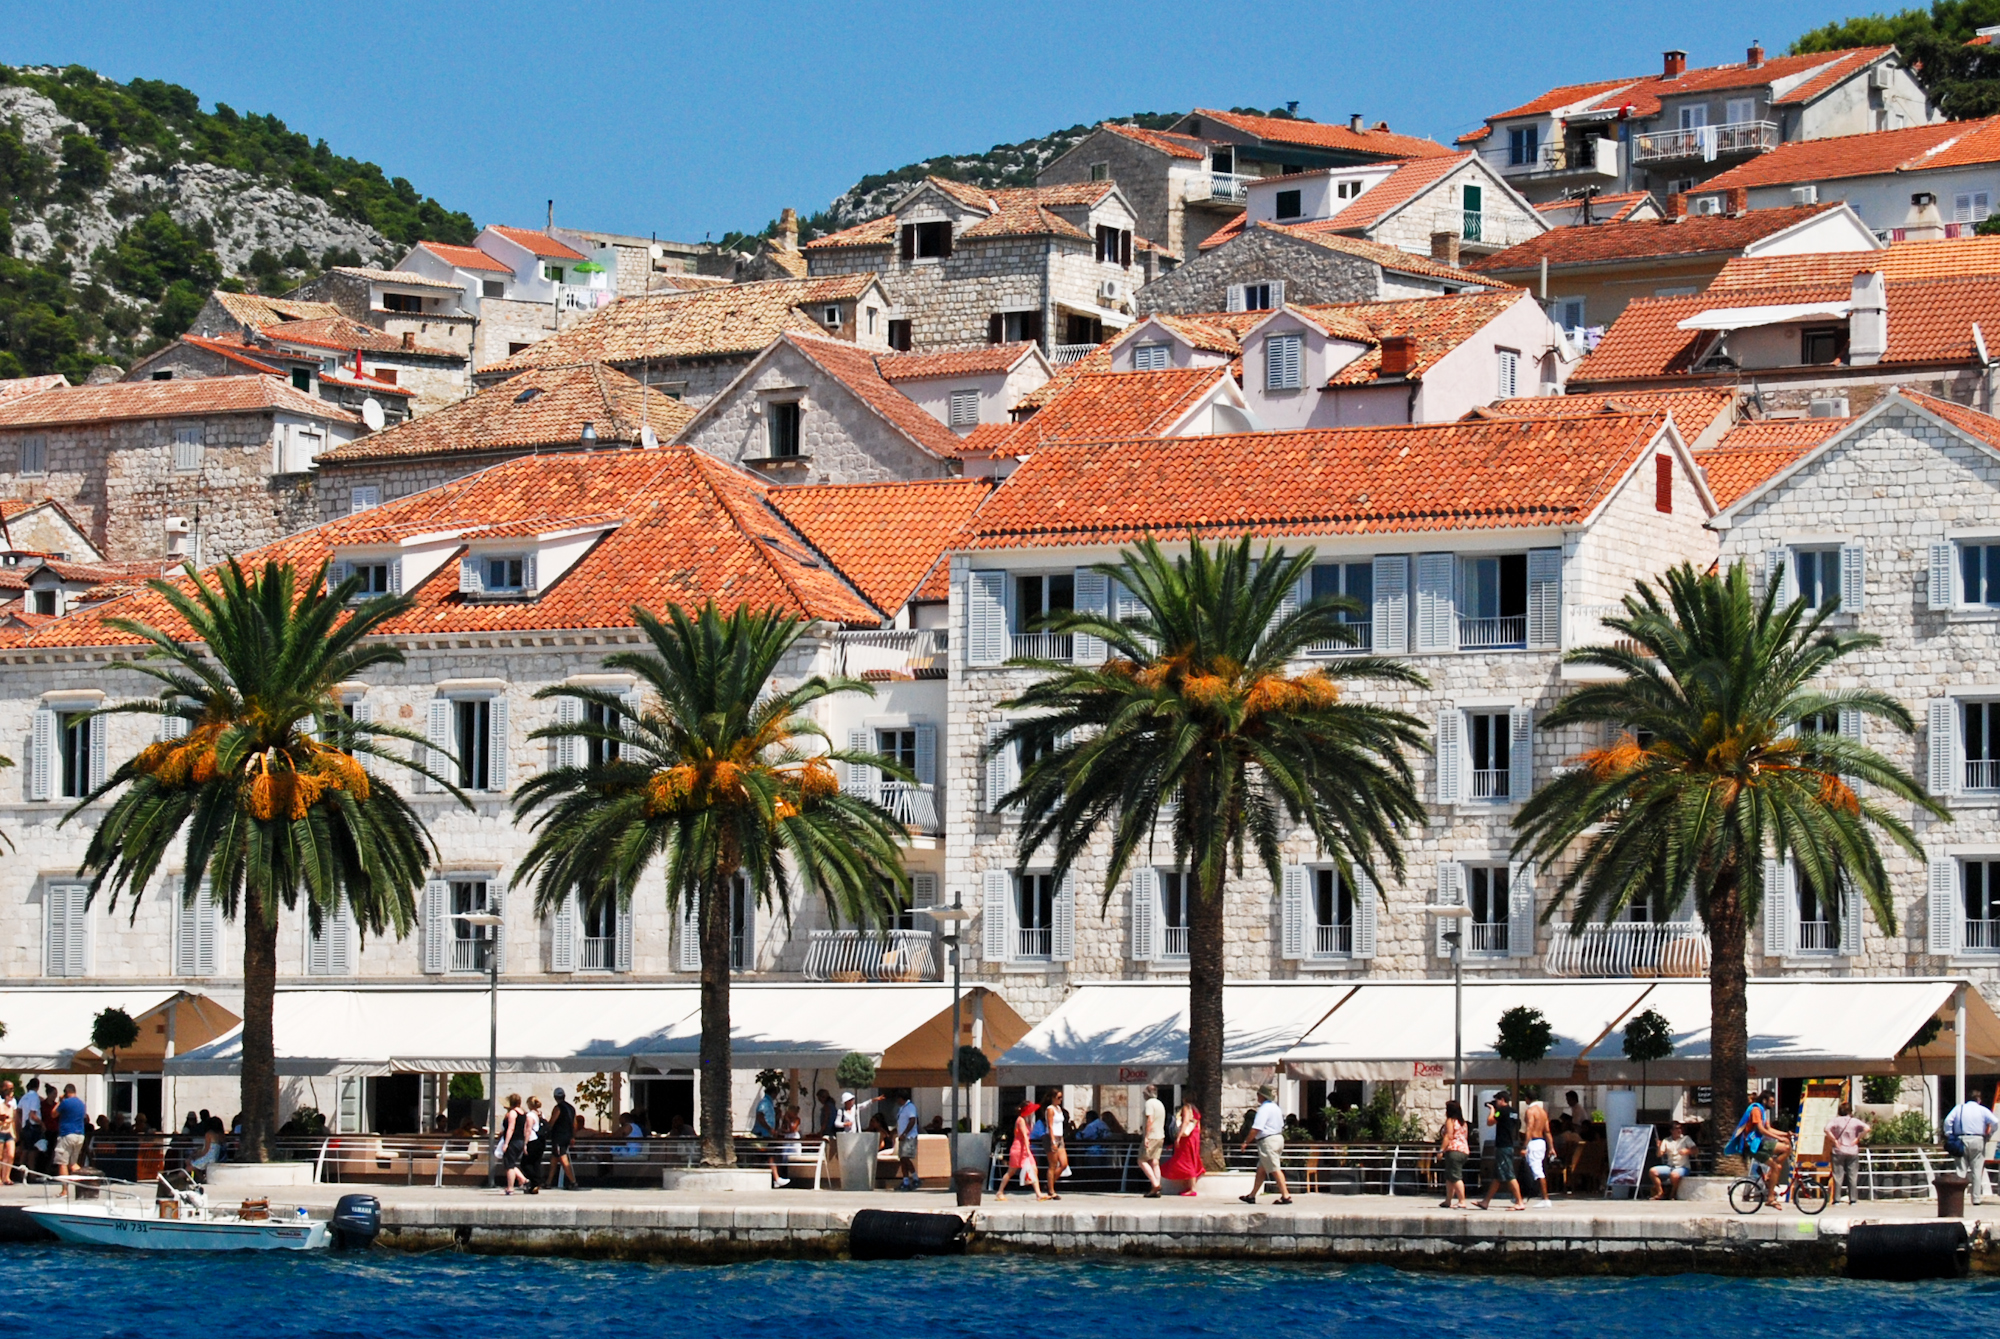 Hvar town waterfront